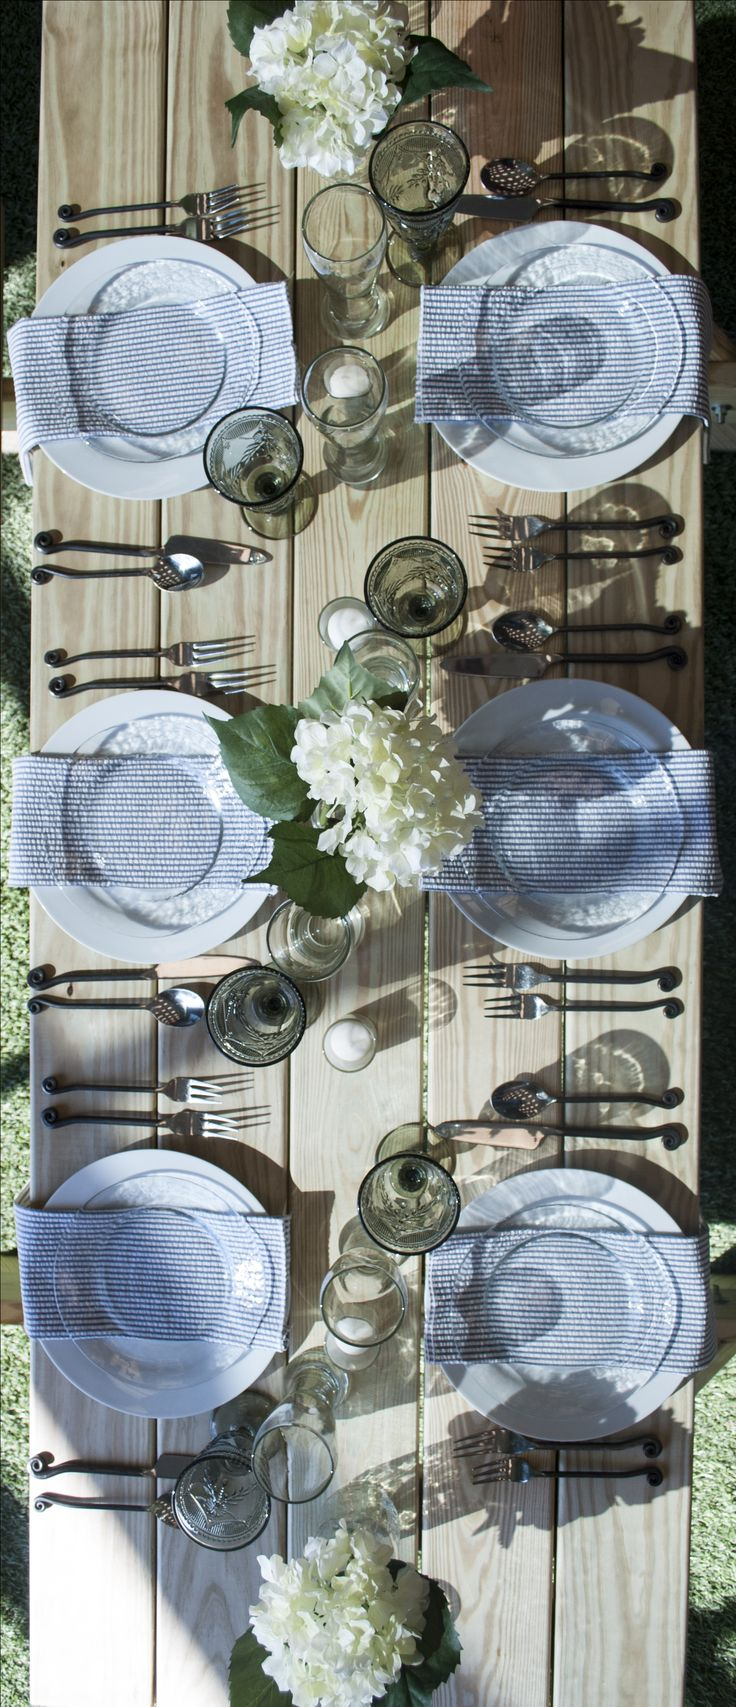 Al-fresco outdoor dining on picnic tables for an intimate backyard garden dinner party | Celebrations! Party Rentals and Tents